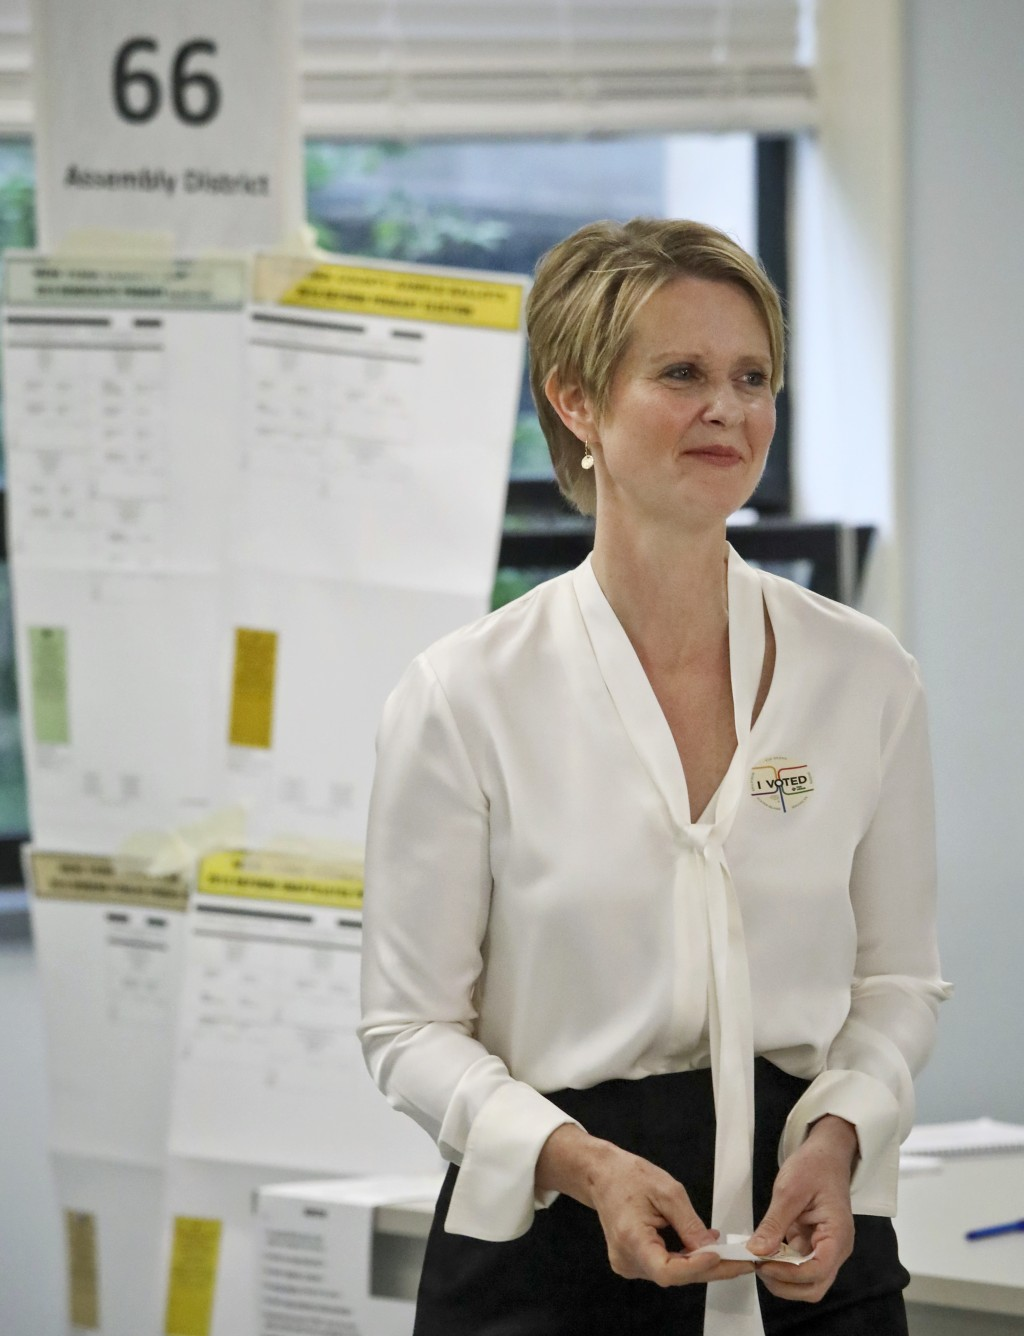 New York gubernatorial candidate Cynthia Nixon leaves a polling station after voting in the primary, Thursday Sept. 13, 2018, in New York. Democrats a